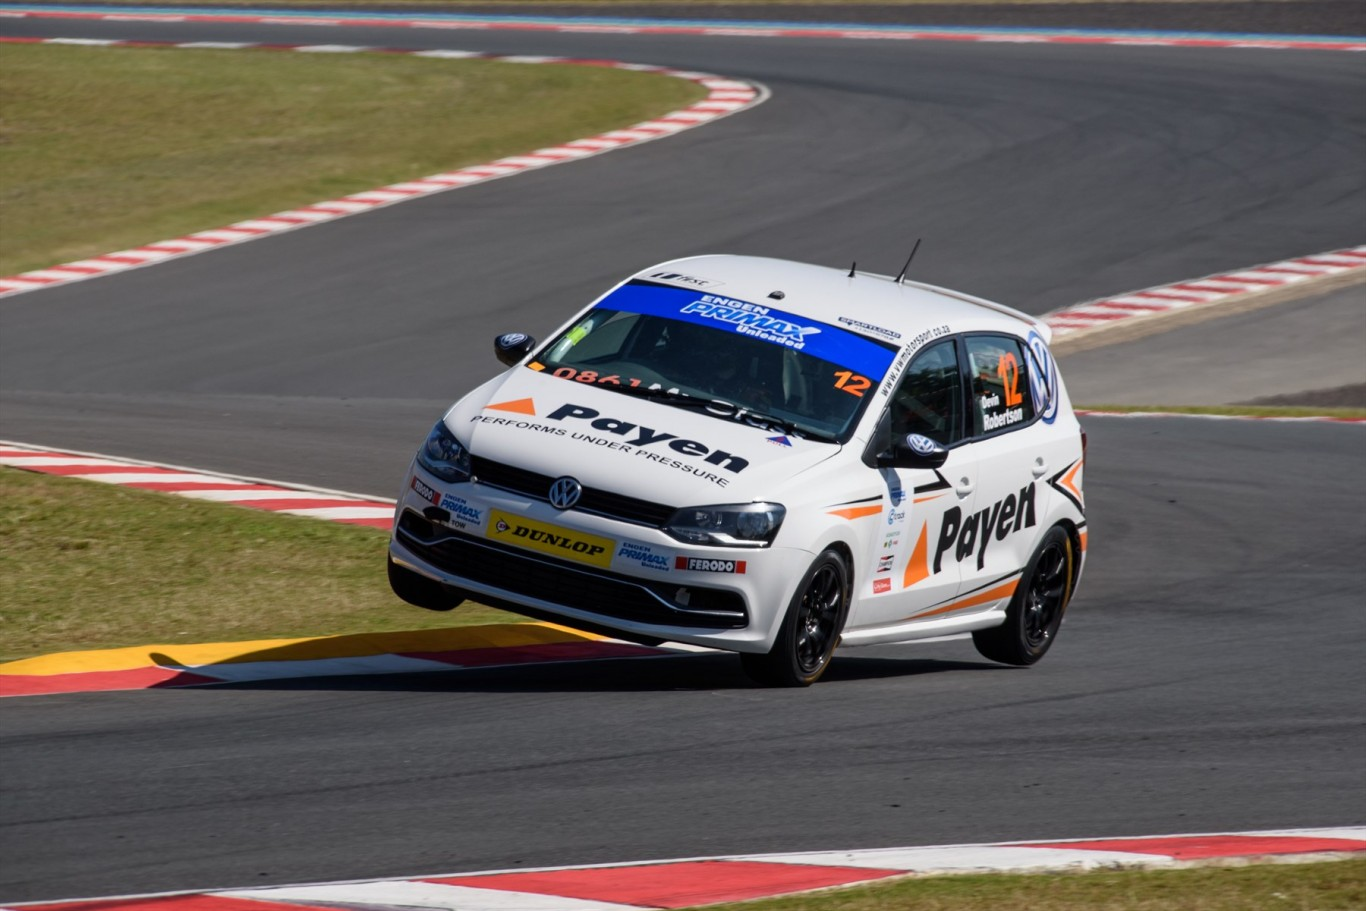 Kyalami to host the final battle of the 2017 Engen Volkswagen Cup